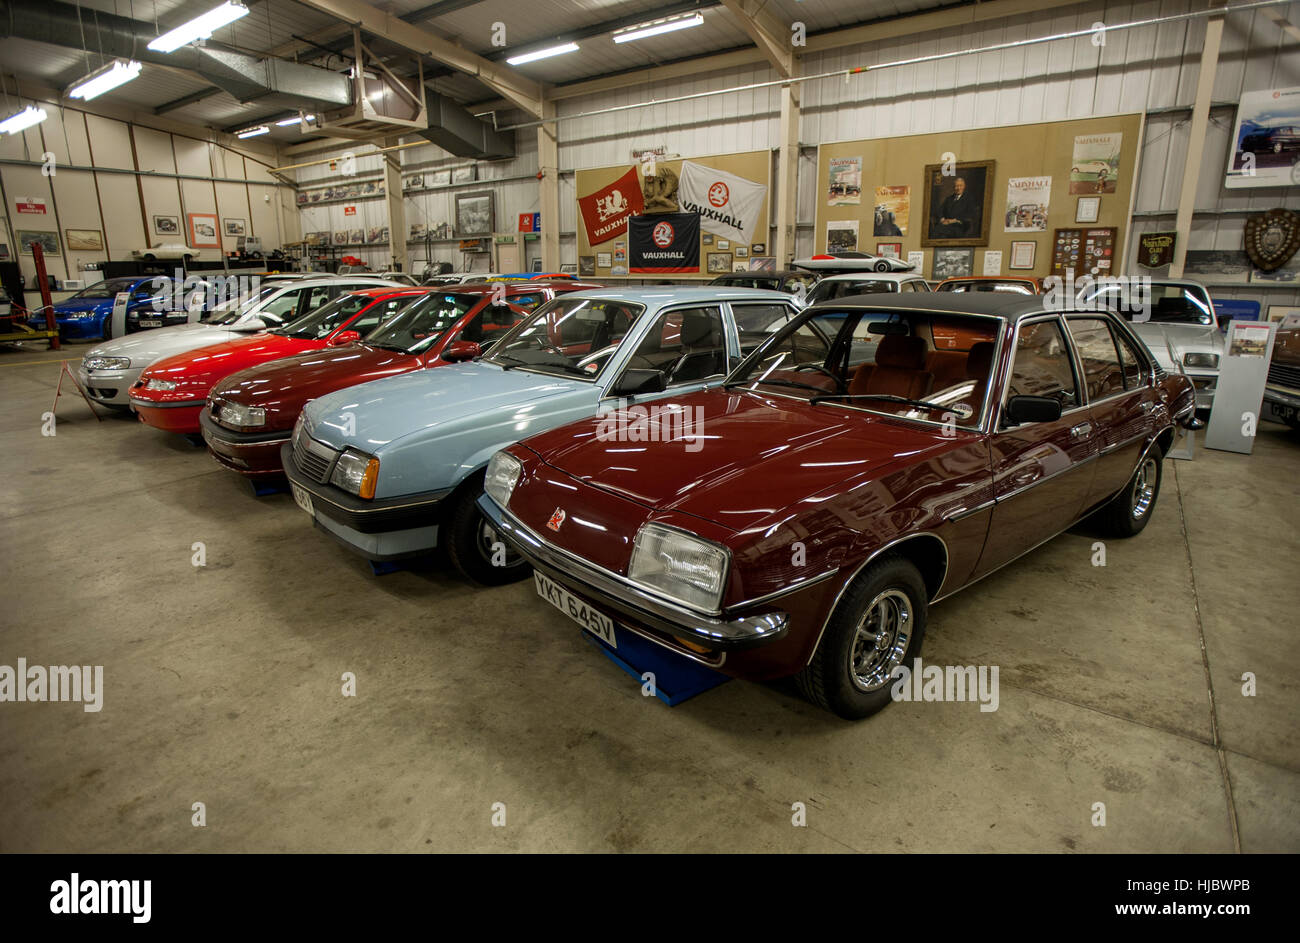 classic cars of the vauxhall heritage collection kept at the car stock photo royalty free image. Black Bedroom Furniture Sets. Home Design Ideas